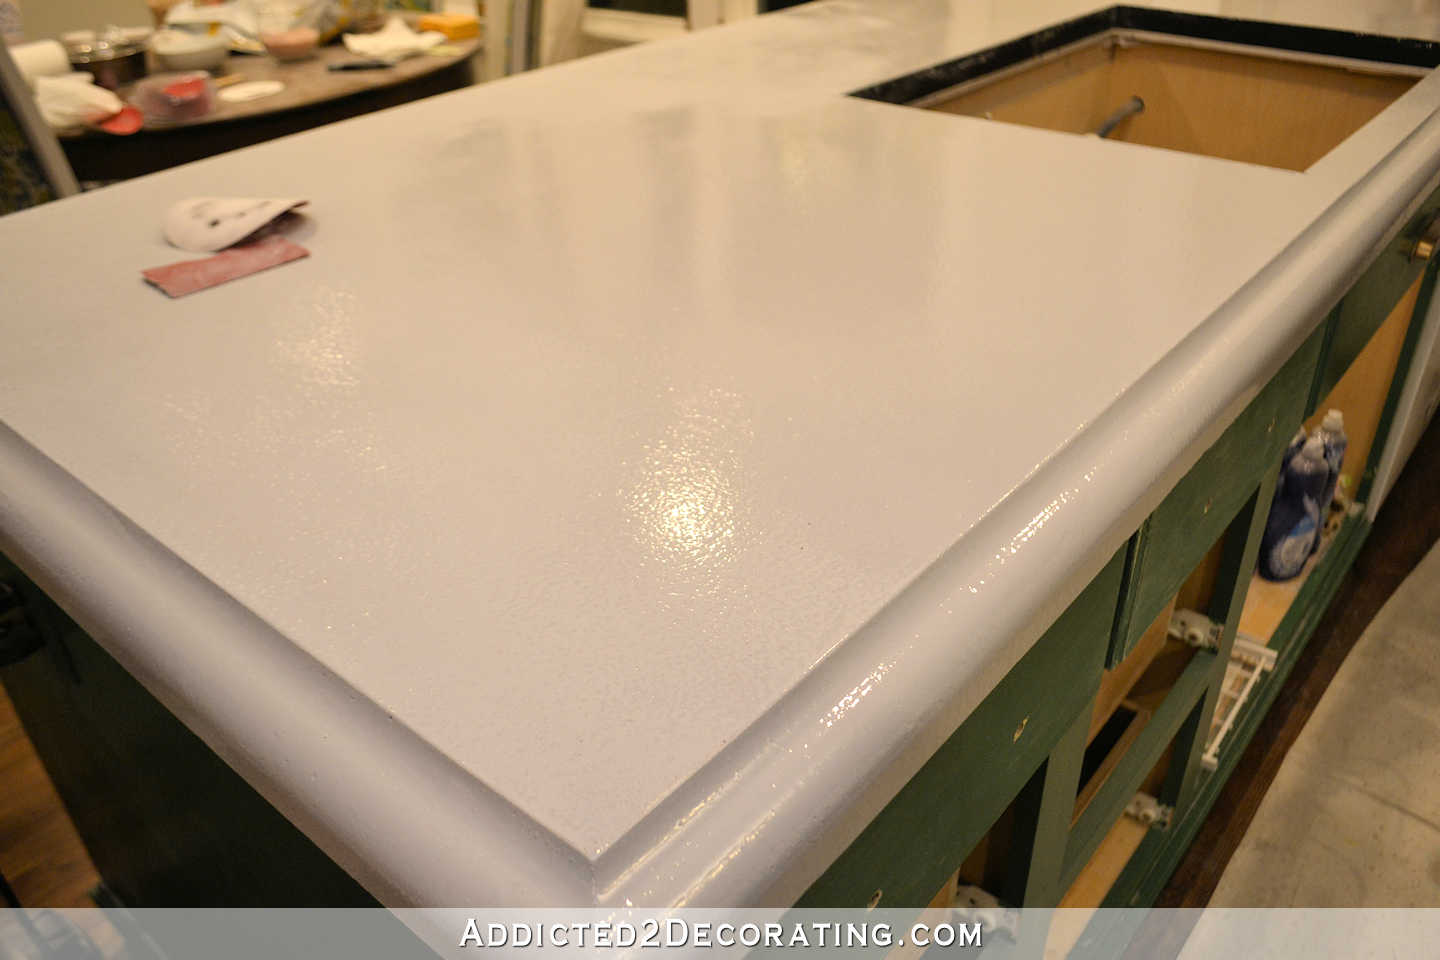 Refinishing My Concrete Kitchen Countertops Part 1 Of 3 Addicted 2 Decorating